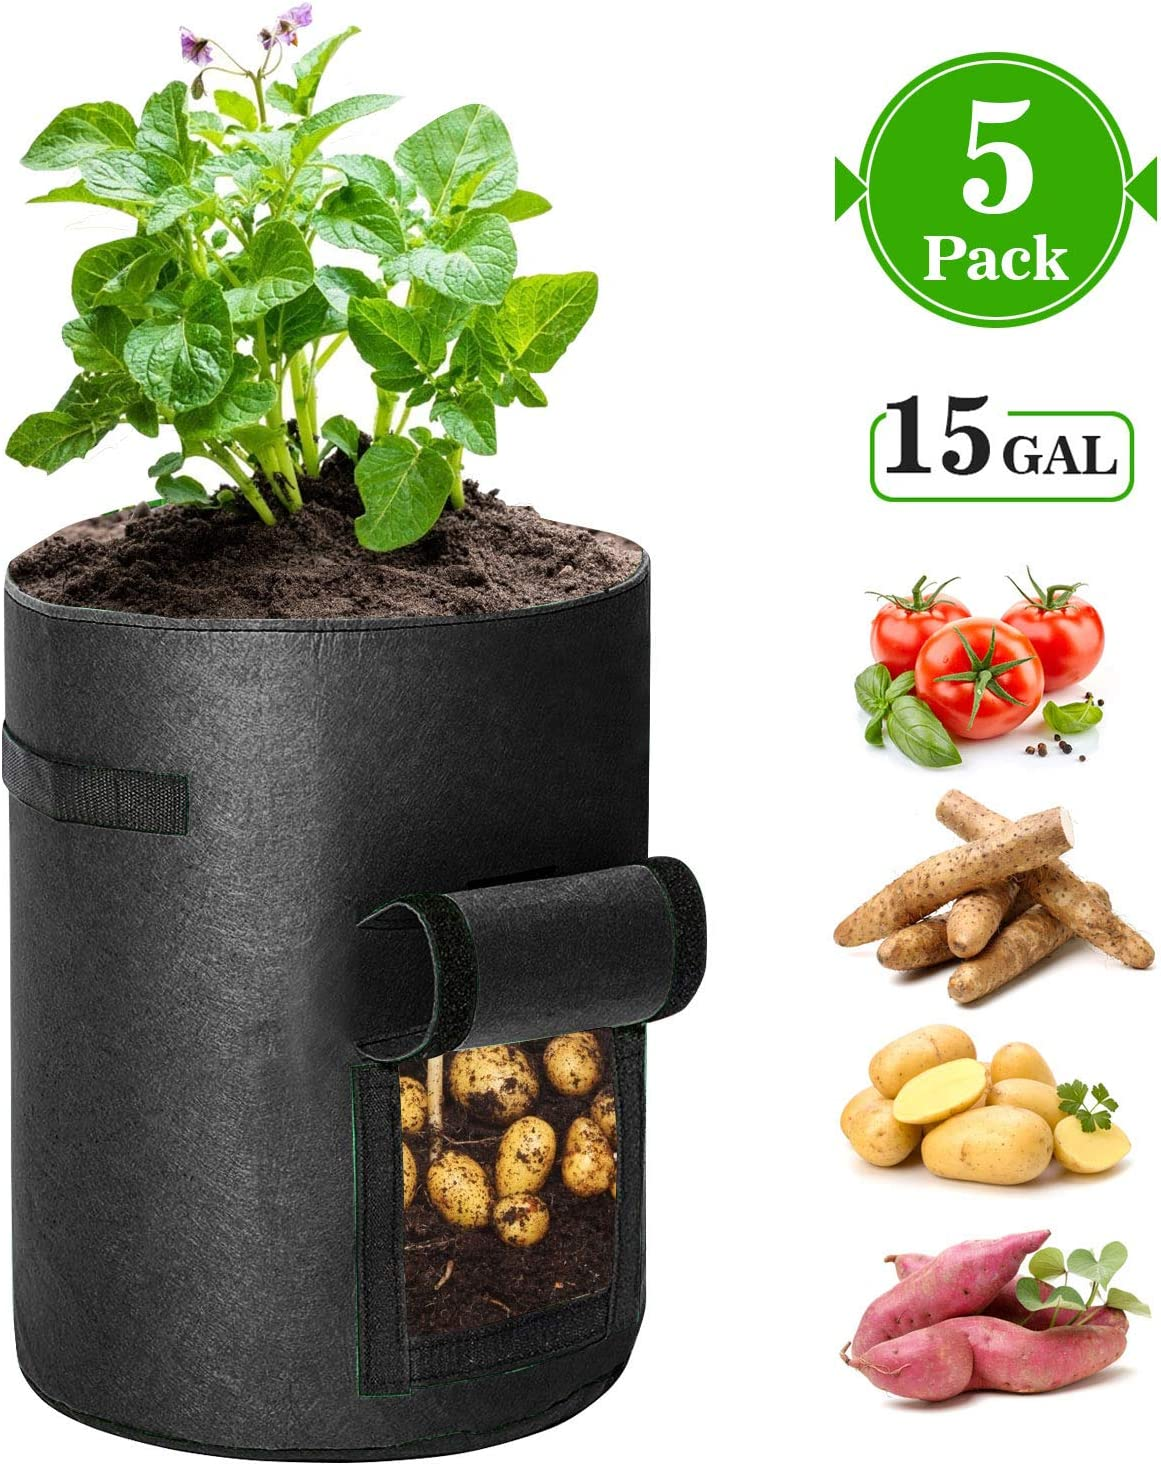 KAUFAM 5 Pack Plant Grow Bag 15 Gallon for Potato Tomato Carrot & Other Vegetable with Harvest Window and Handles, Easy to Use Flower Non-Woven Growing Bag Planting Box Container Garden Indoor Outdoor